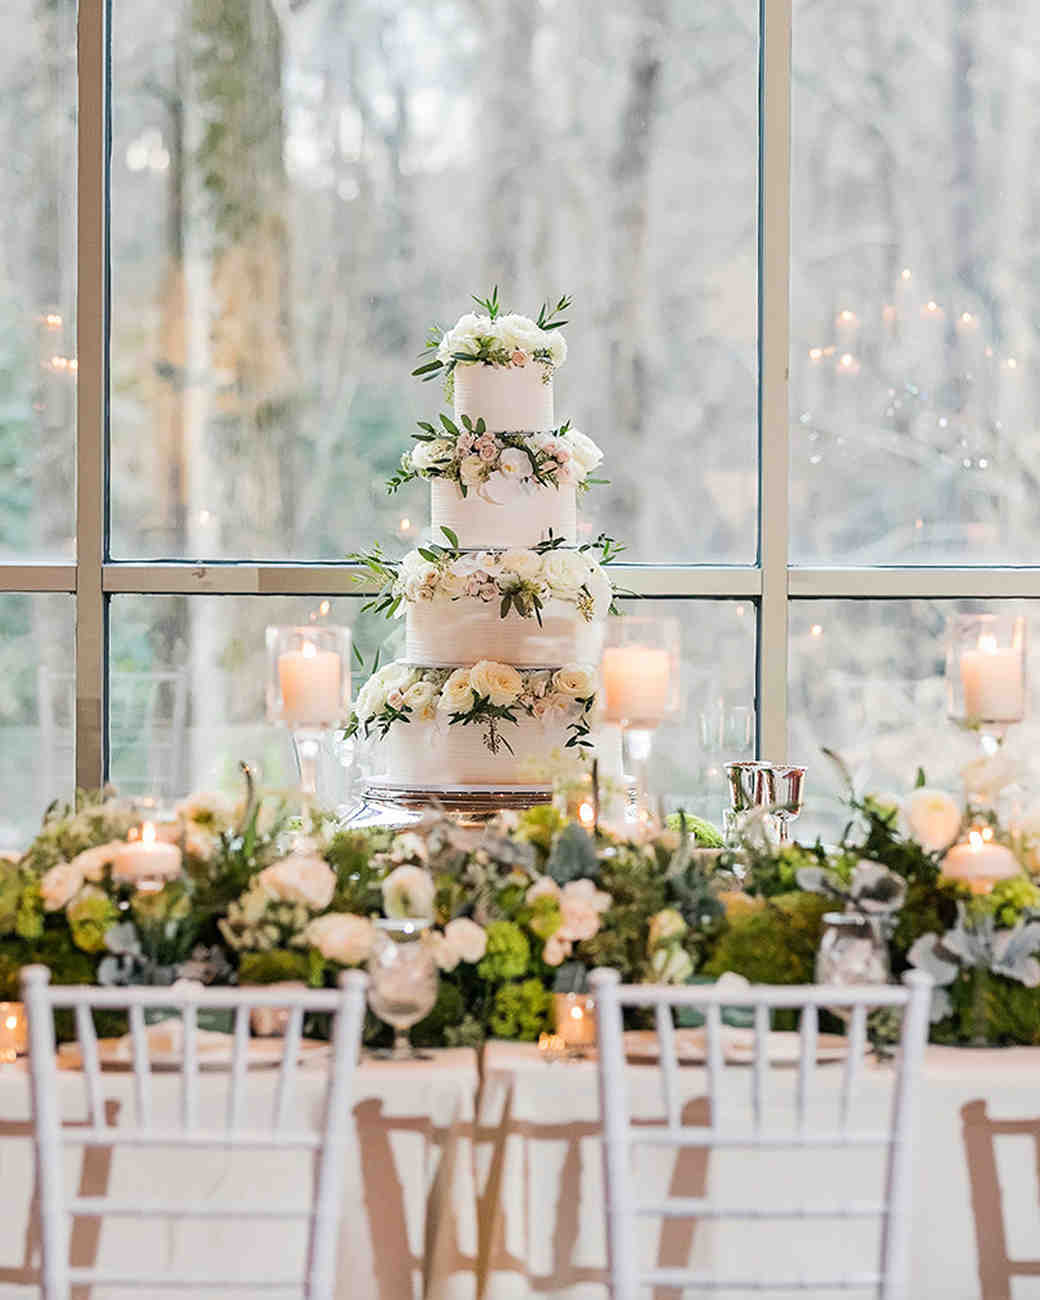 cakes with floral tiers elevated centerpieces